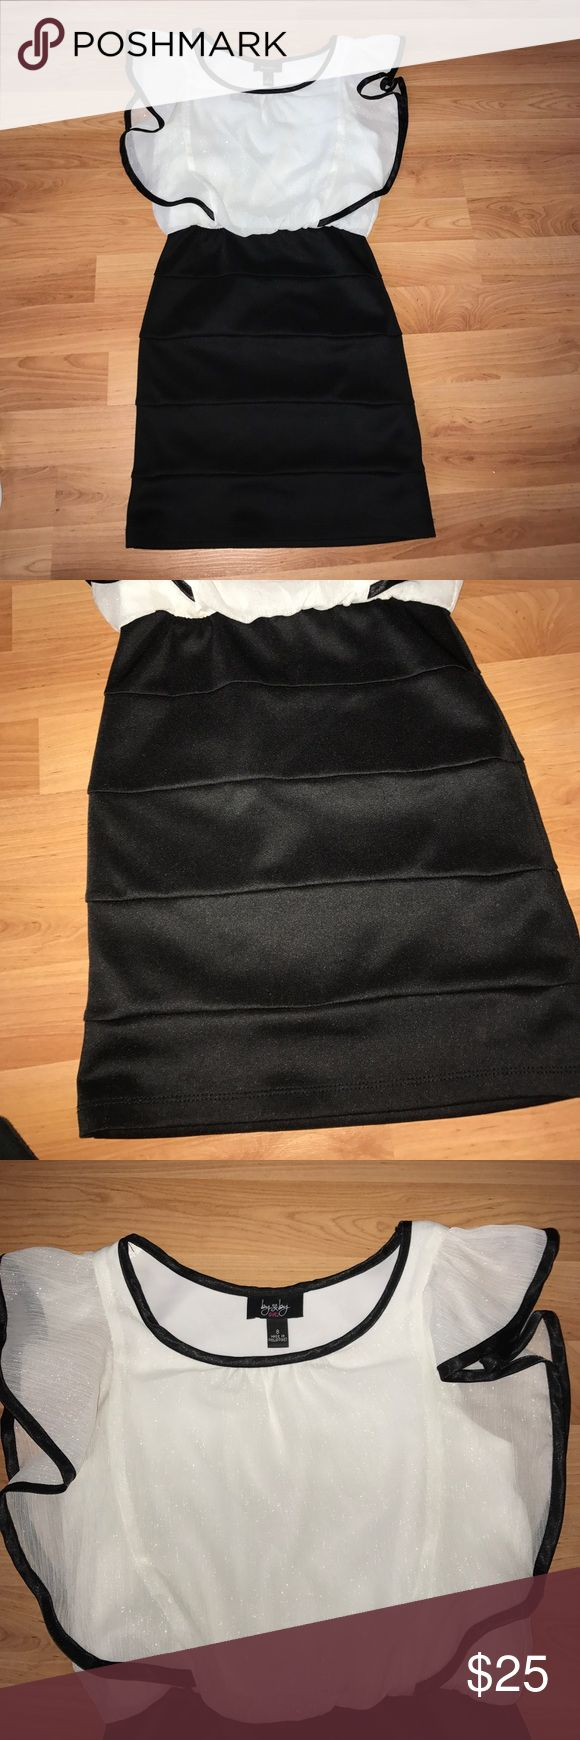 Girls black and white mini dress Gorgeous black and white girls mini dress ( I call this a big girl dress) lol black skirt with sheer and shimmery cream colored flowy top with black trim worn once girls size 8 Dresses